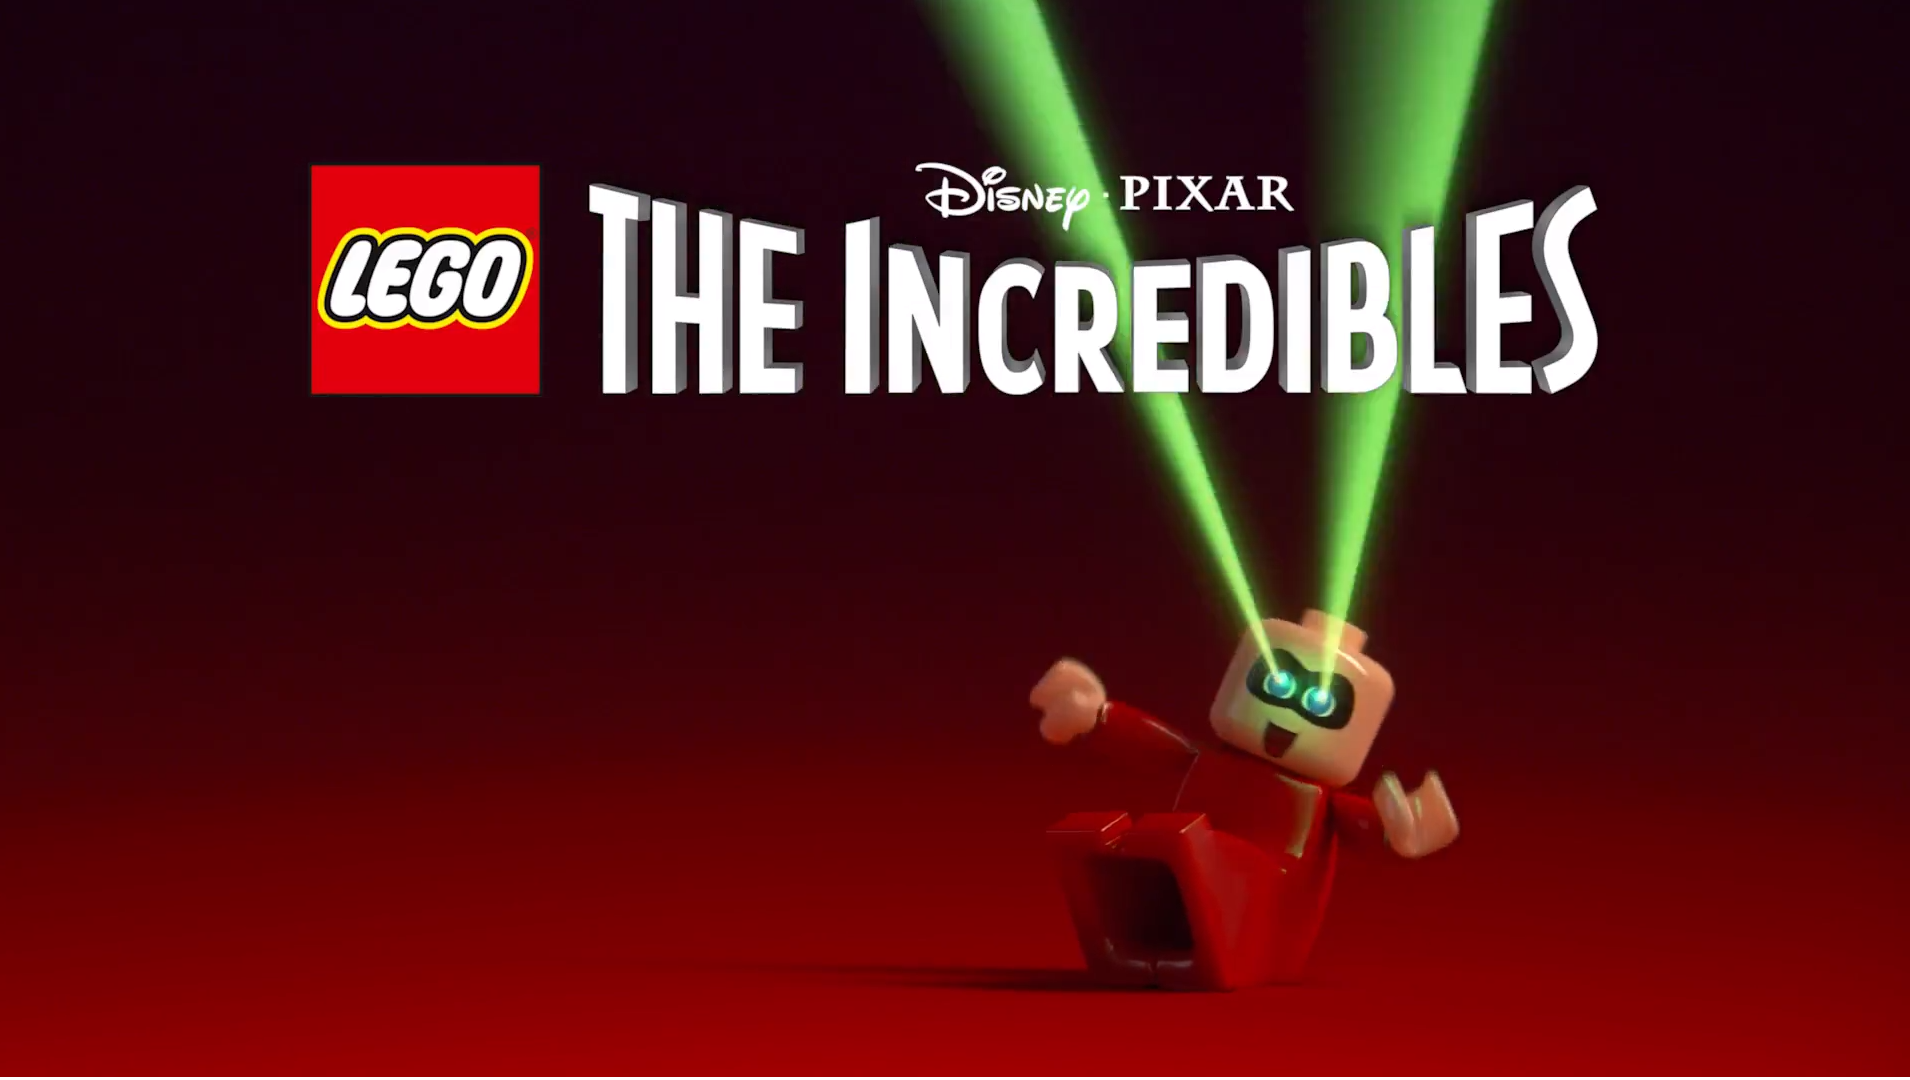 Lego Incredibles Cheat Codes and Stud Unlocks - All Red Bricks and